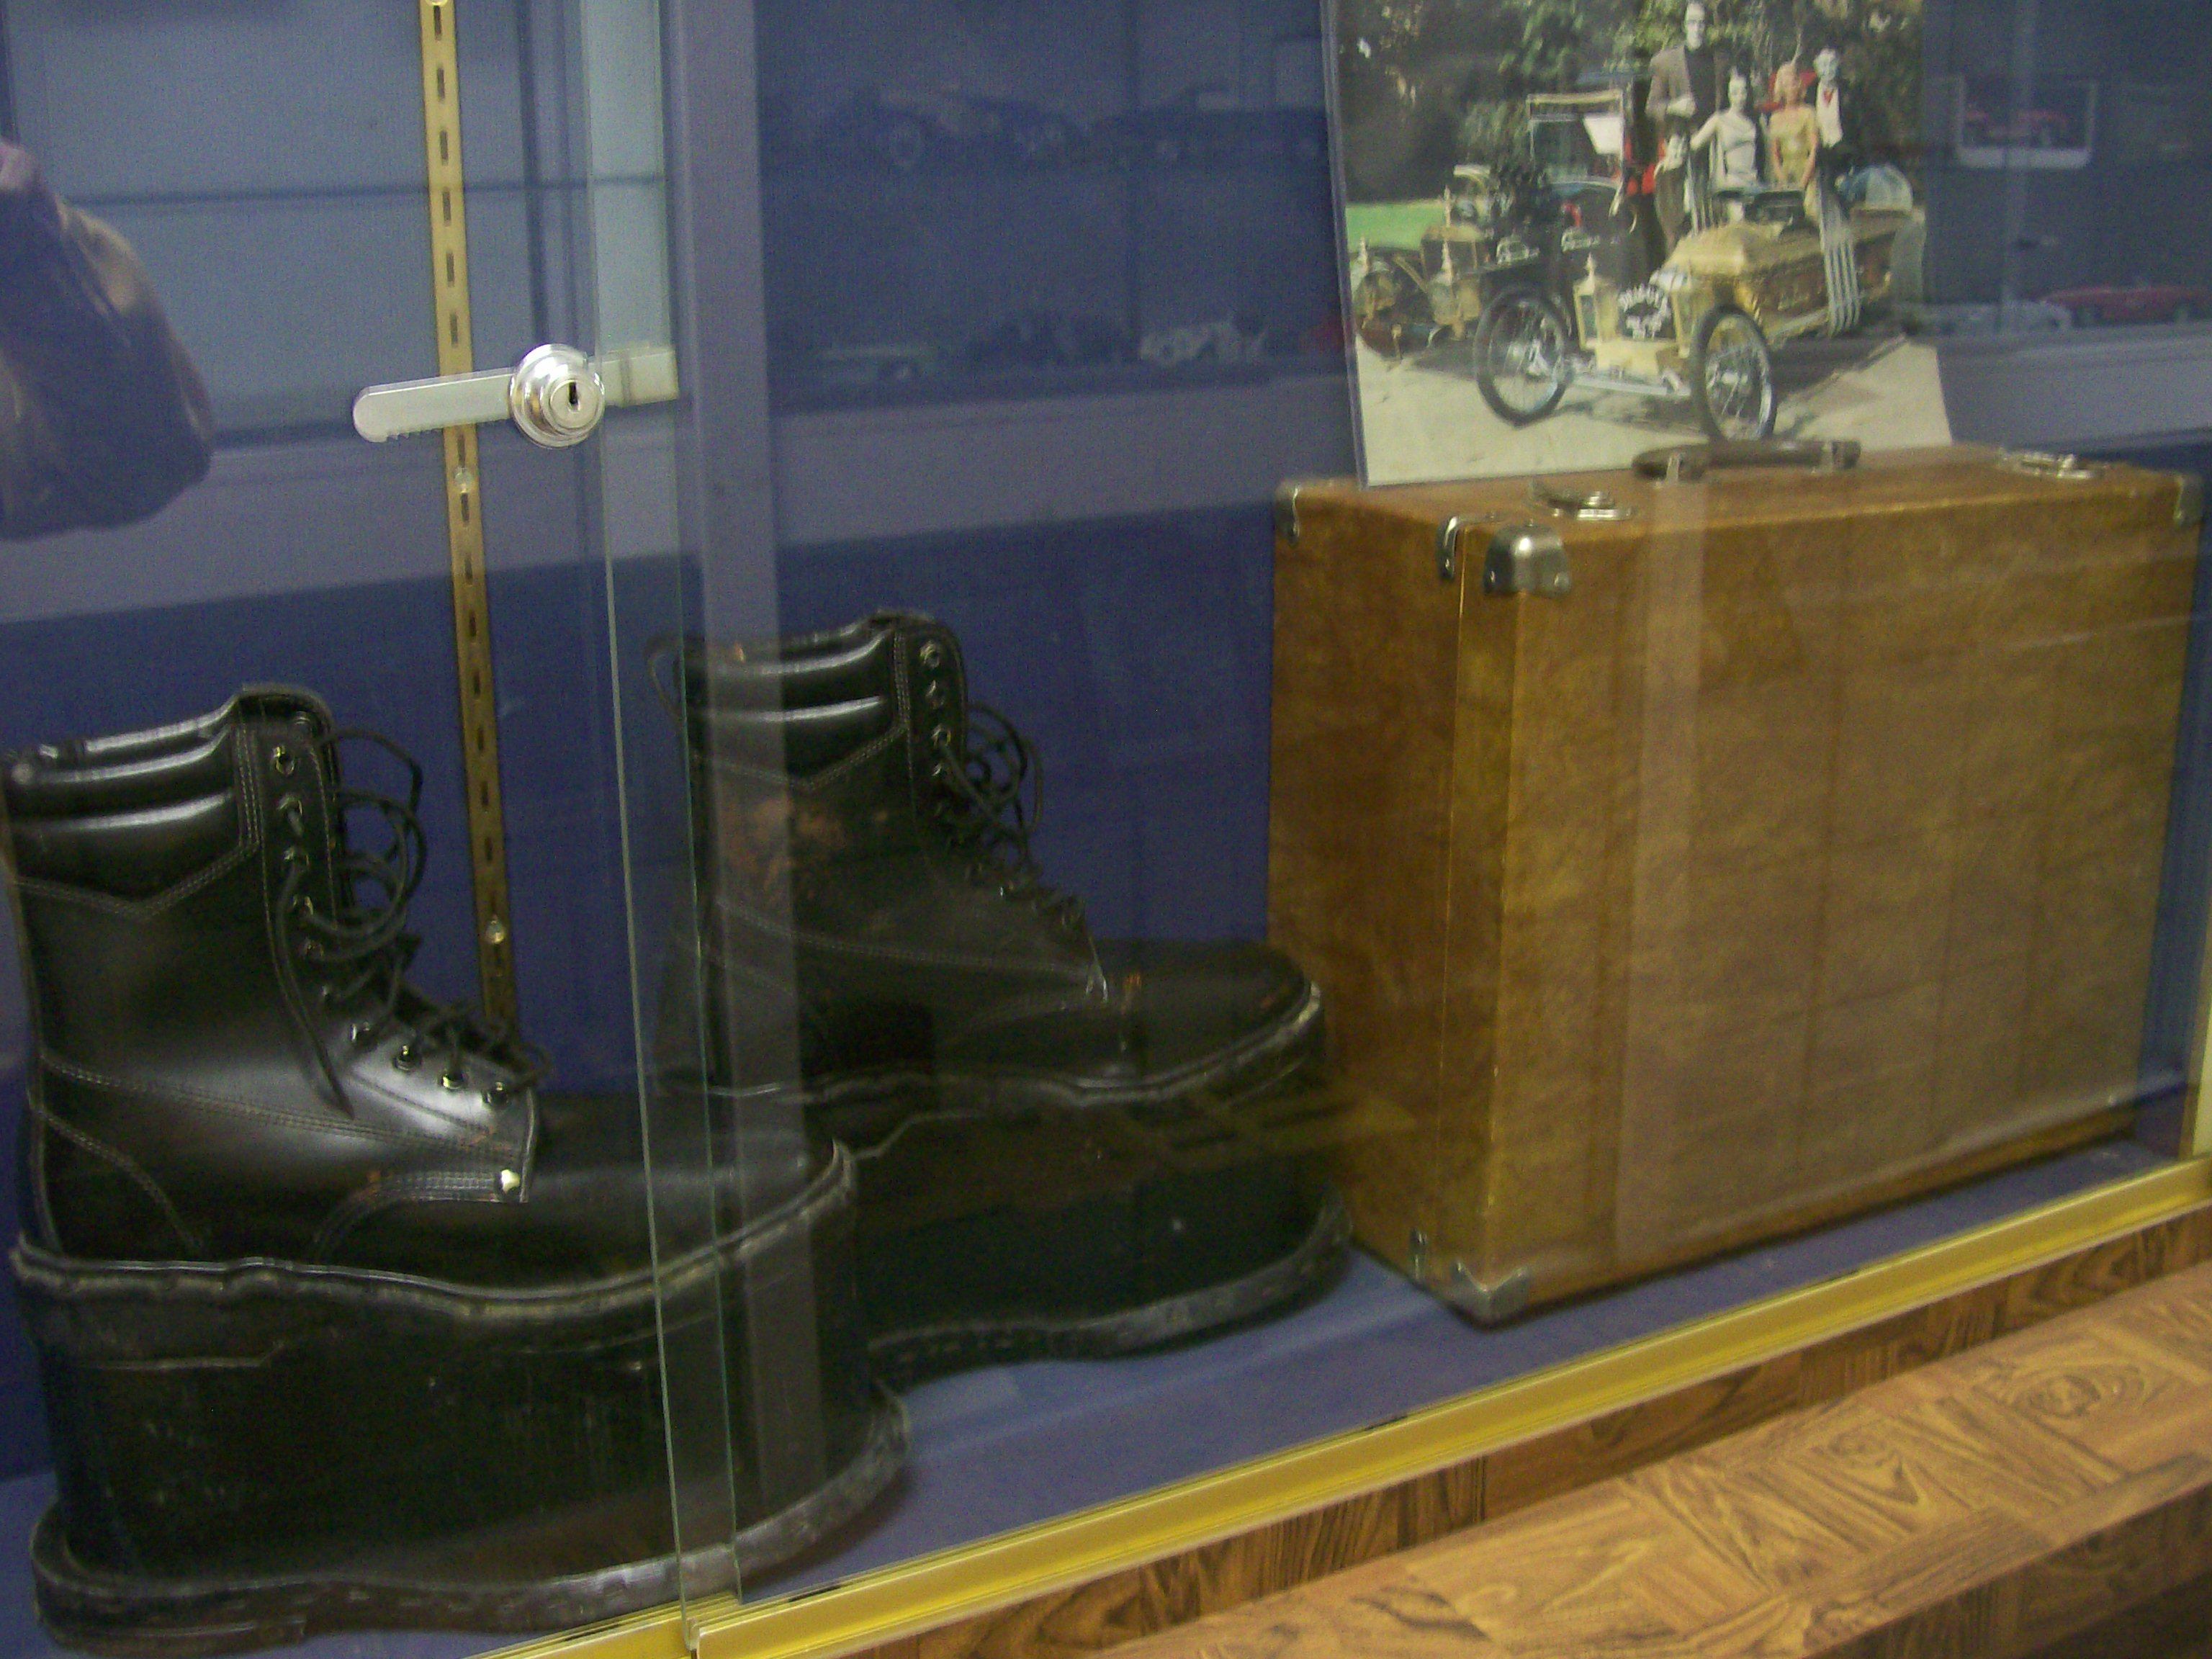 Herman Munster's Platform Shoes From The Munsters T.V. Show